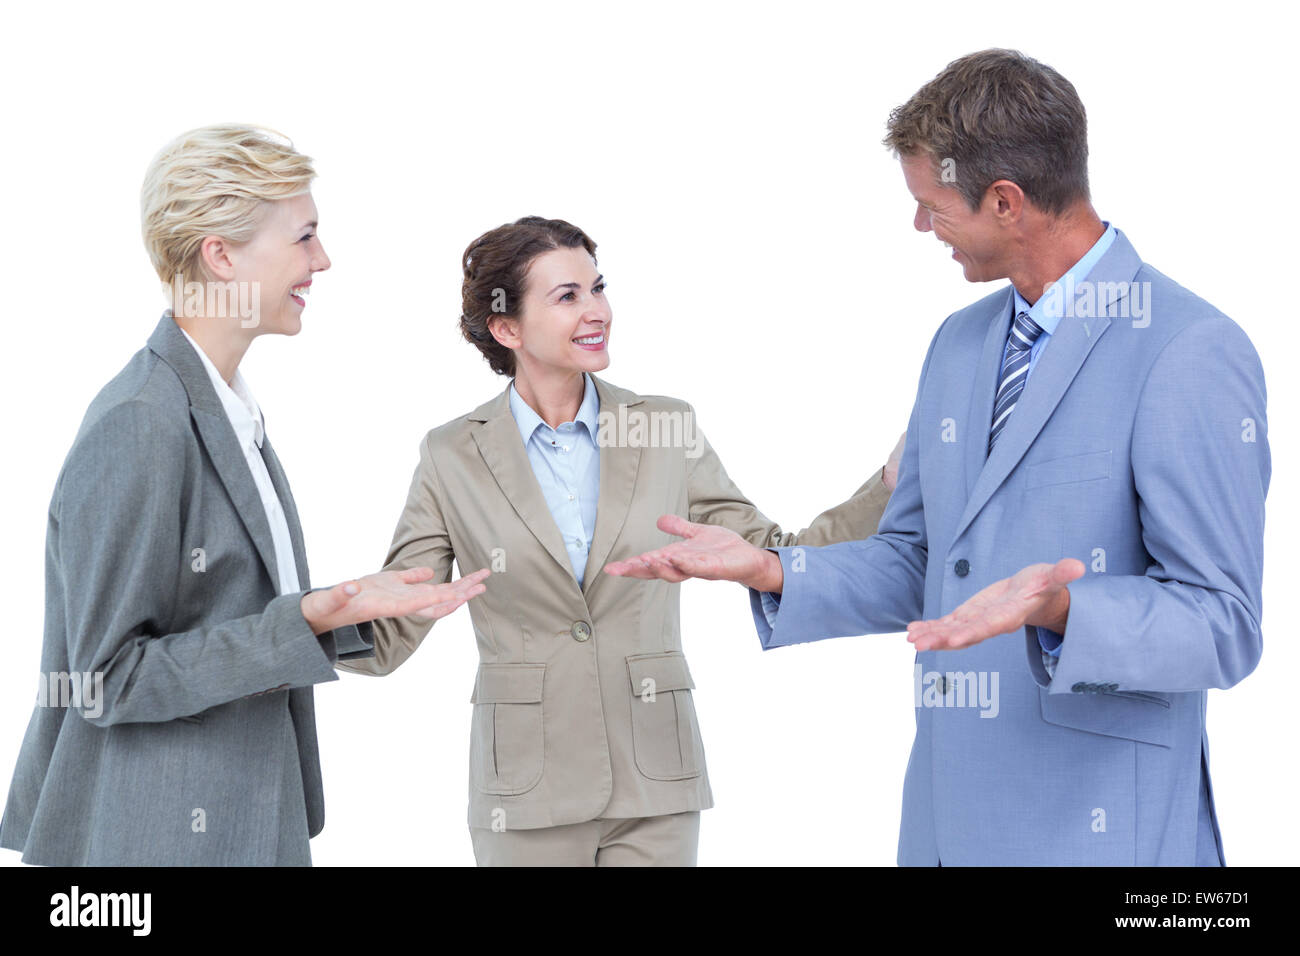 Business people being gentle with themselves - Stock Image